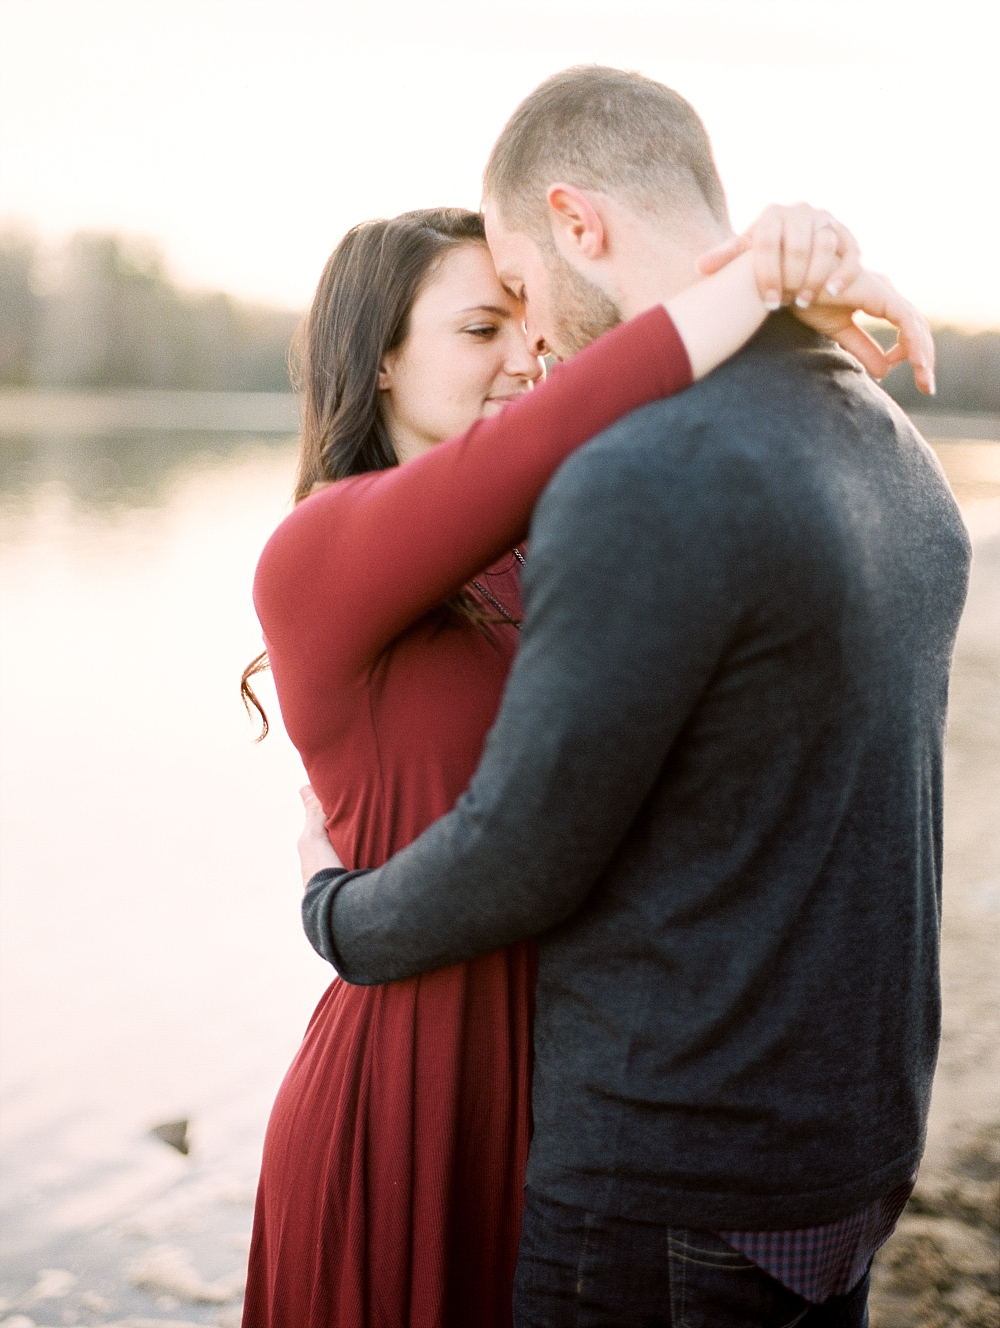 JuicebeatsPhotography_KnoxvilleEngagement_Kristina&Ben_0050.jpg